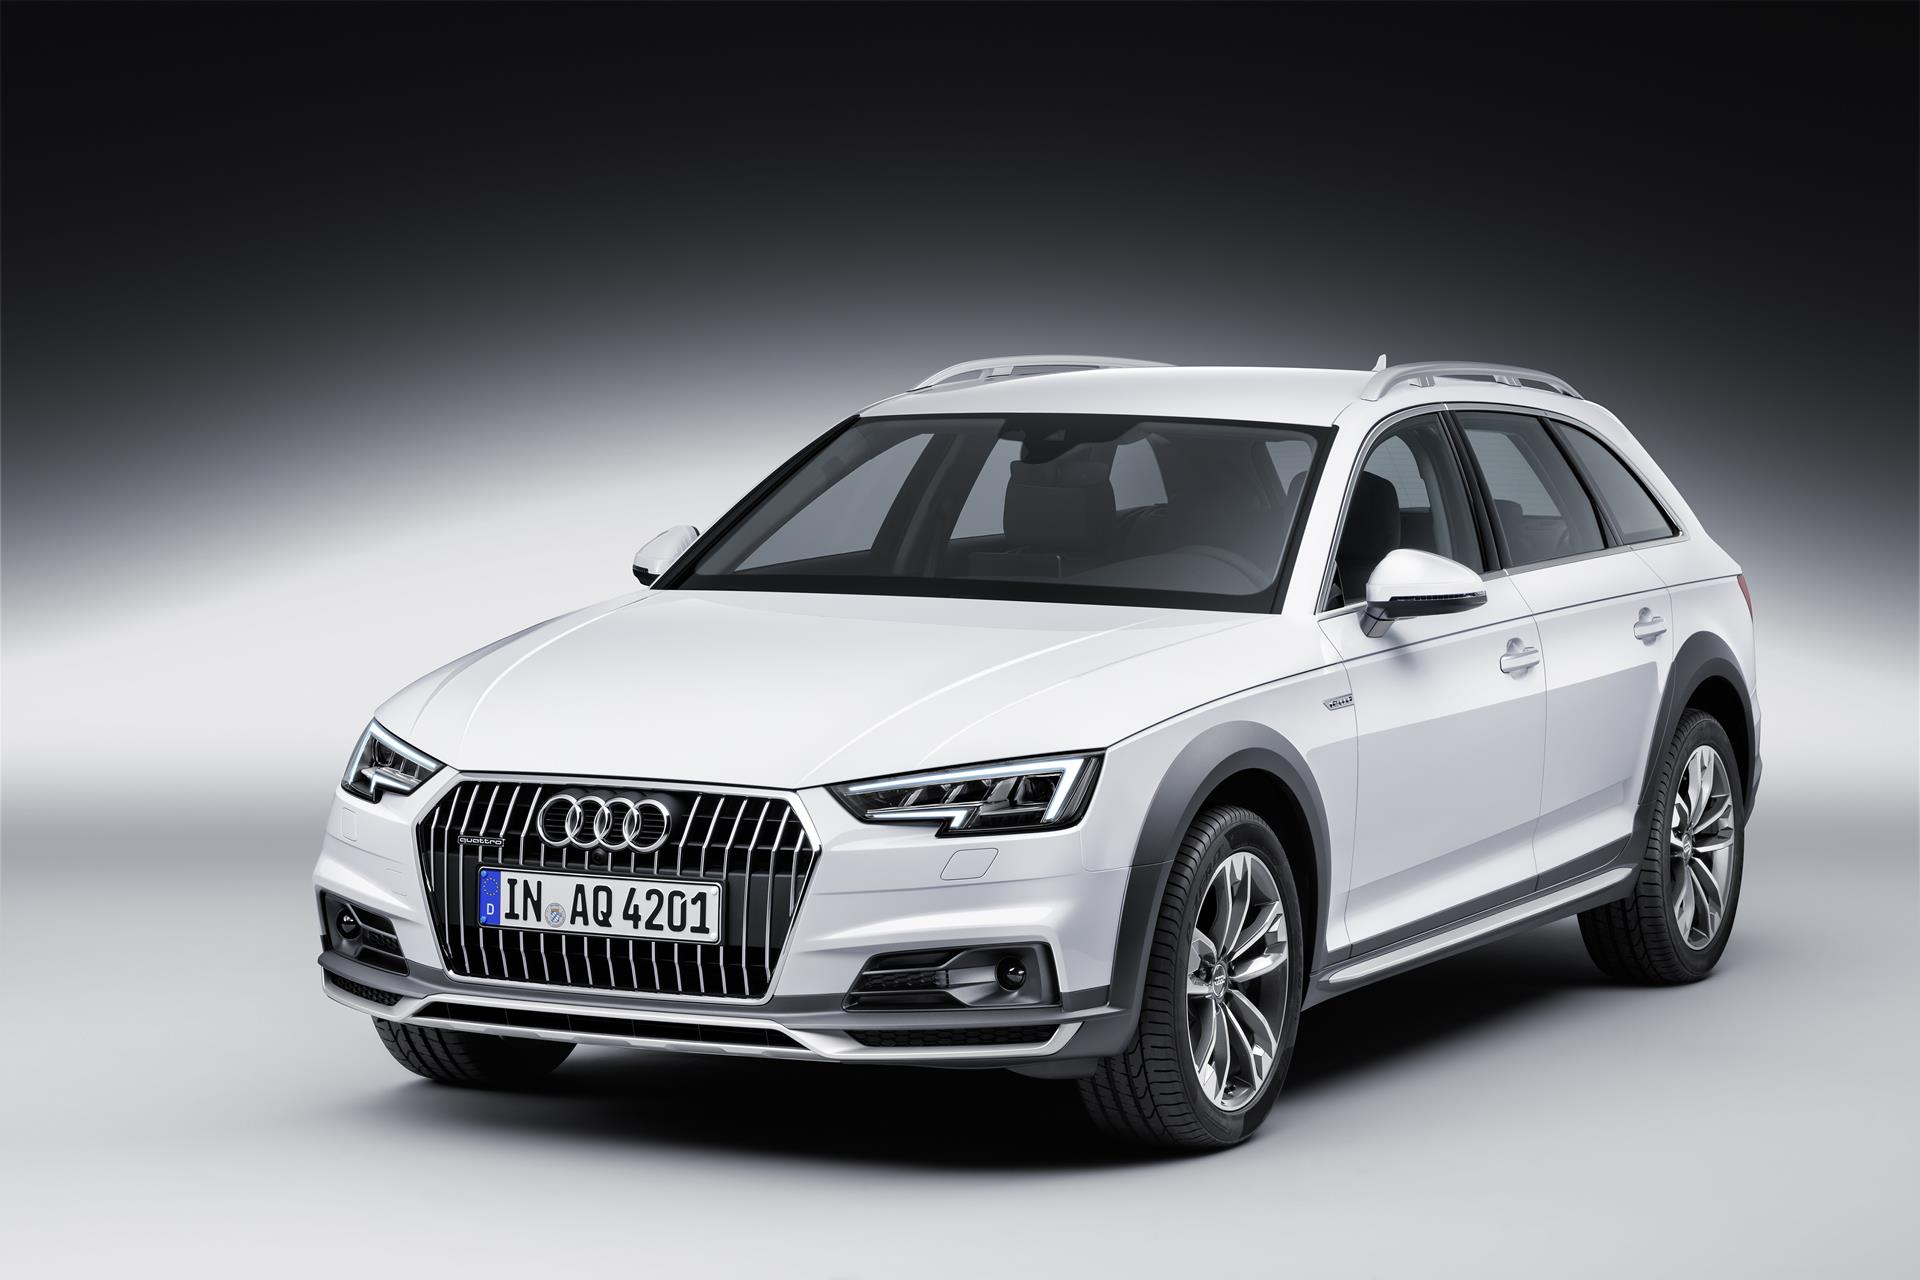 2017 audi a4 allroad quattro image. Black Bedroom Furniture Sets. Home Design Ideas